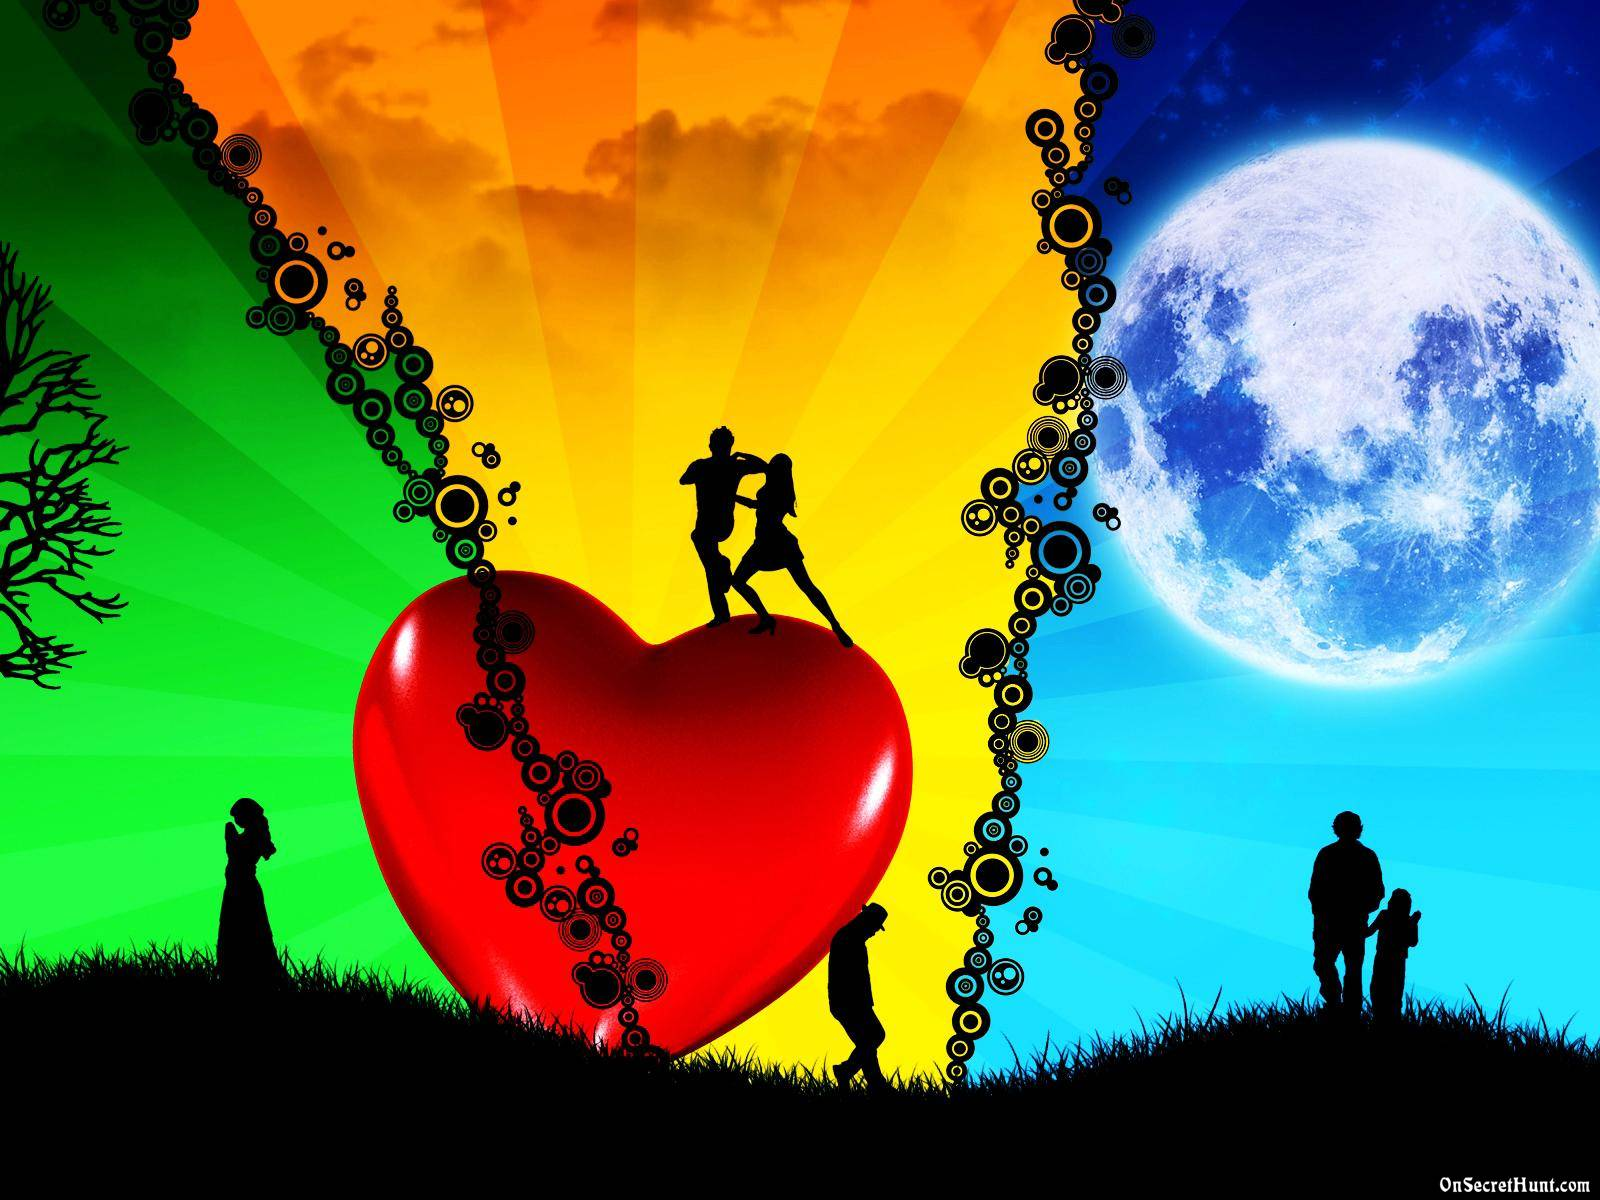 Love Wallpaper Big Size Hd : Love Wallpapers 3D - Wallpaper cave